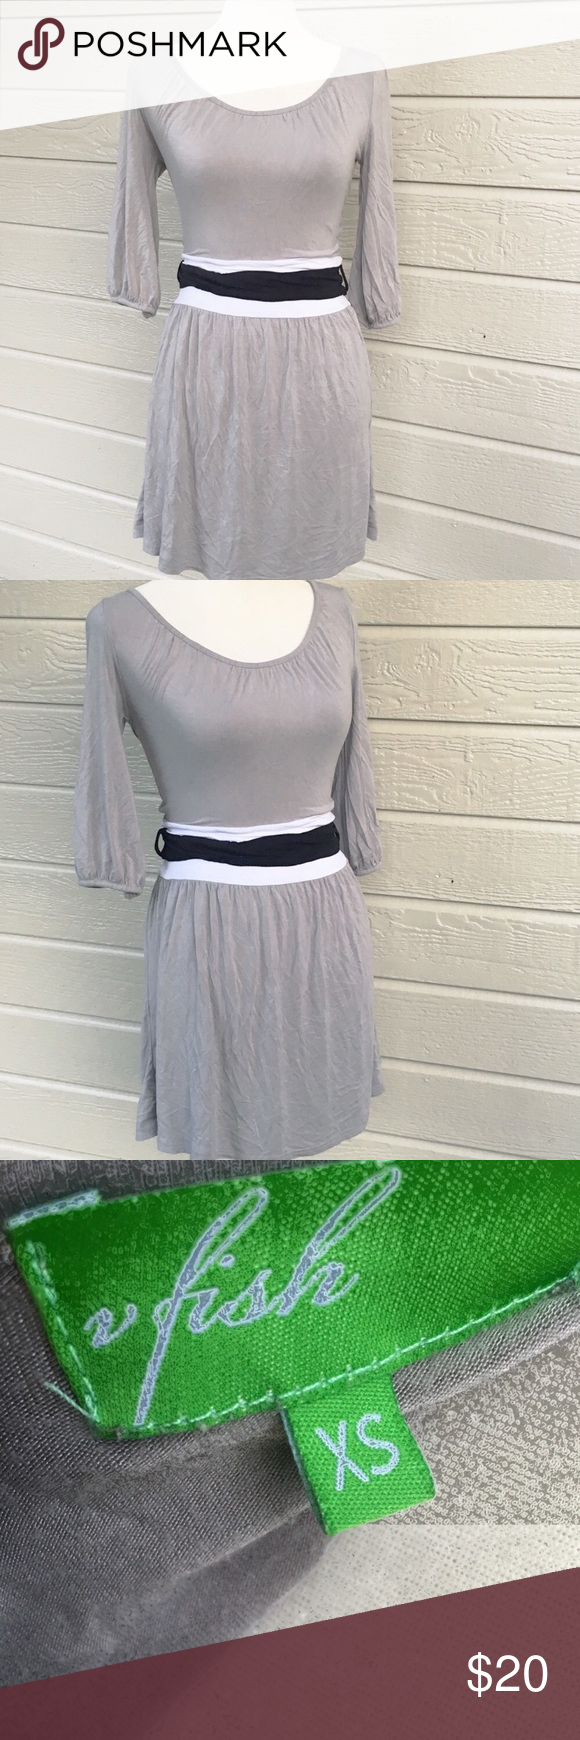 Vfish 3 4 Sleeve Gray Casual Dress Cute Casual Dresses Casual Cocktail Dress High Fashion Street Style [ 1740 x 580 Pixel ]